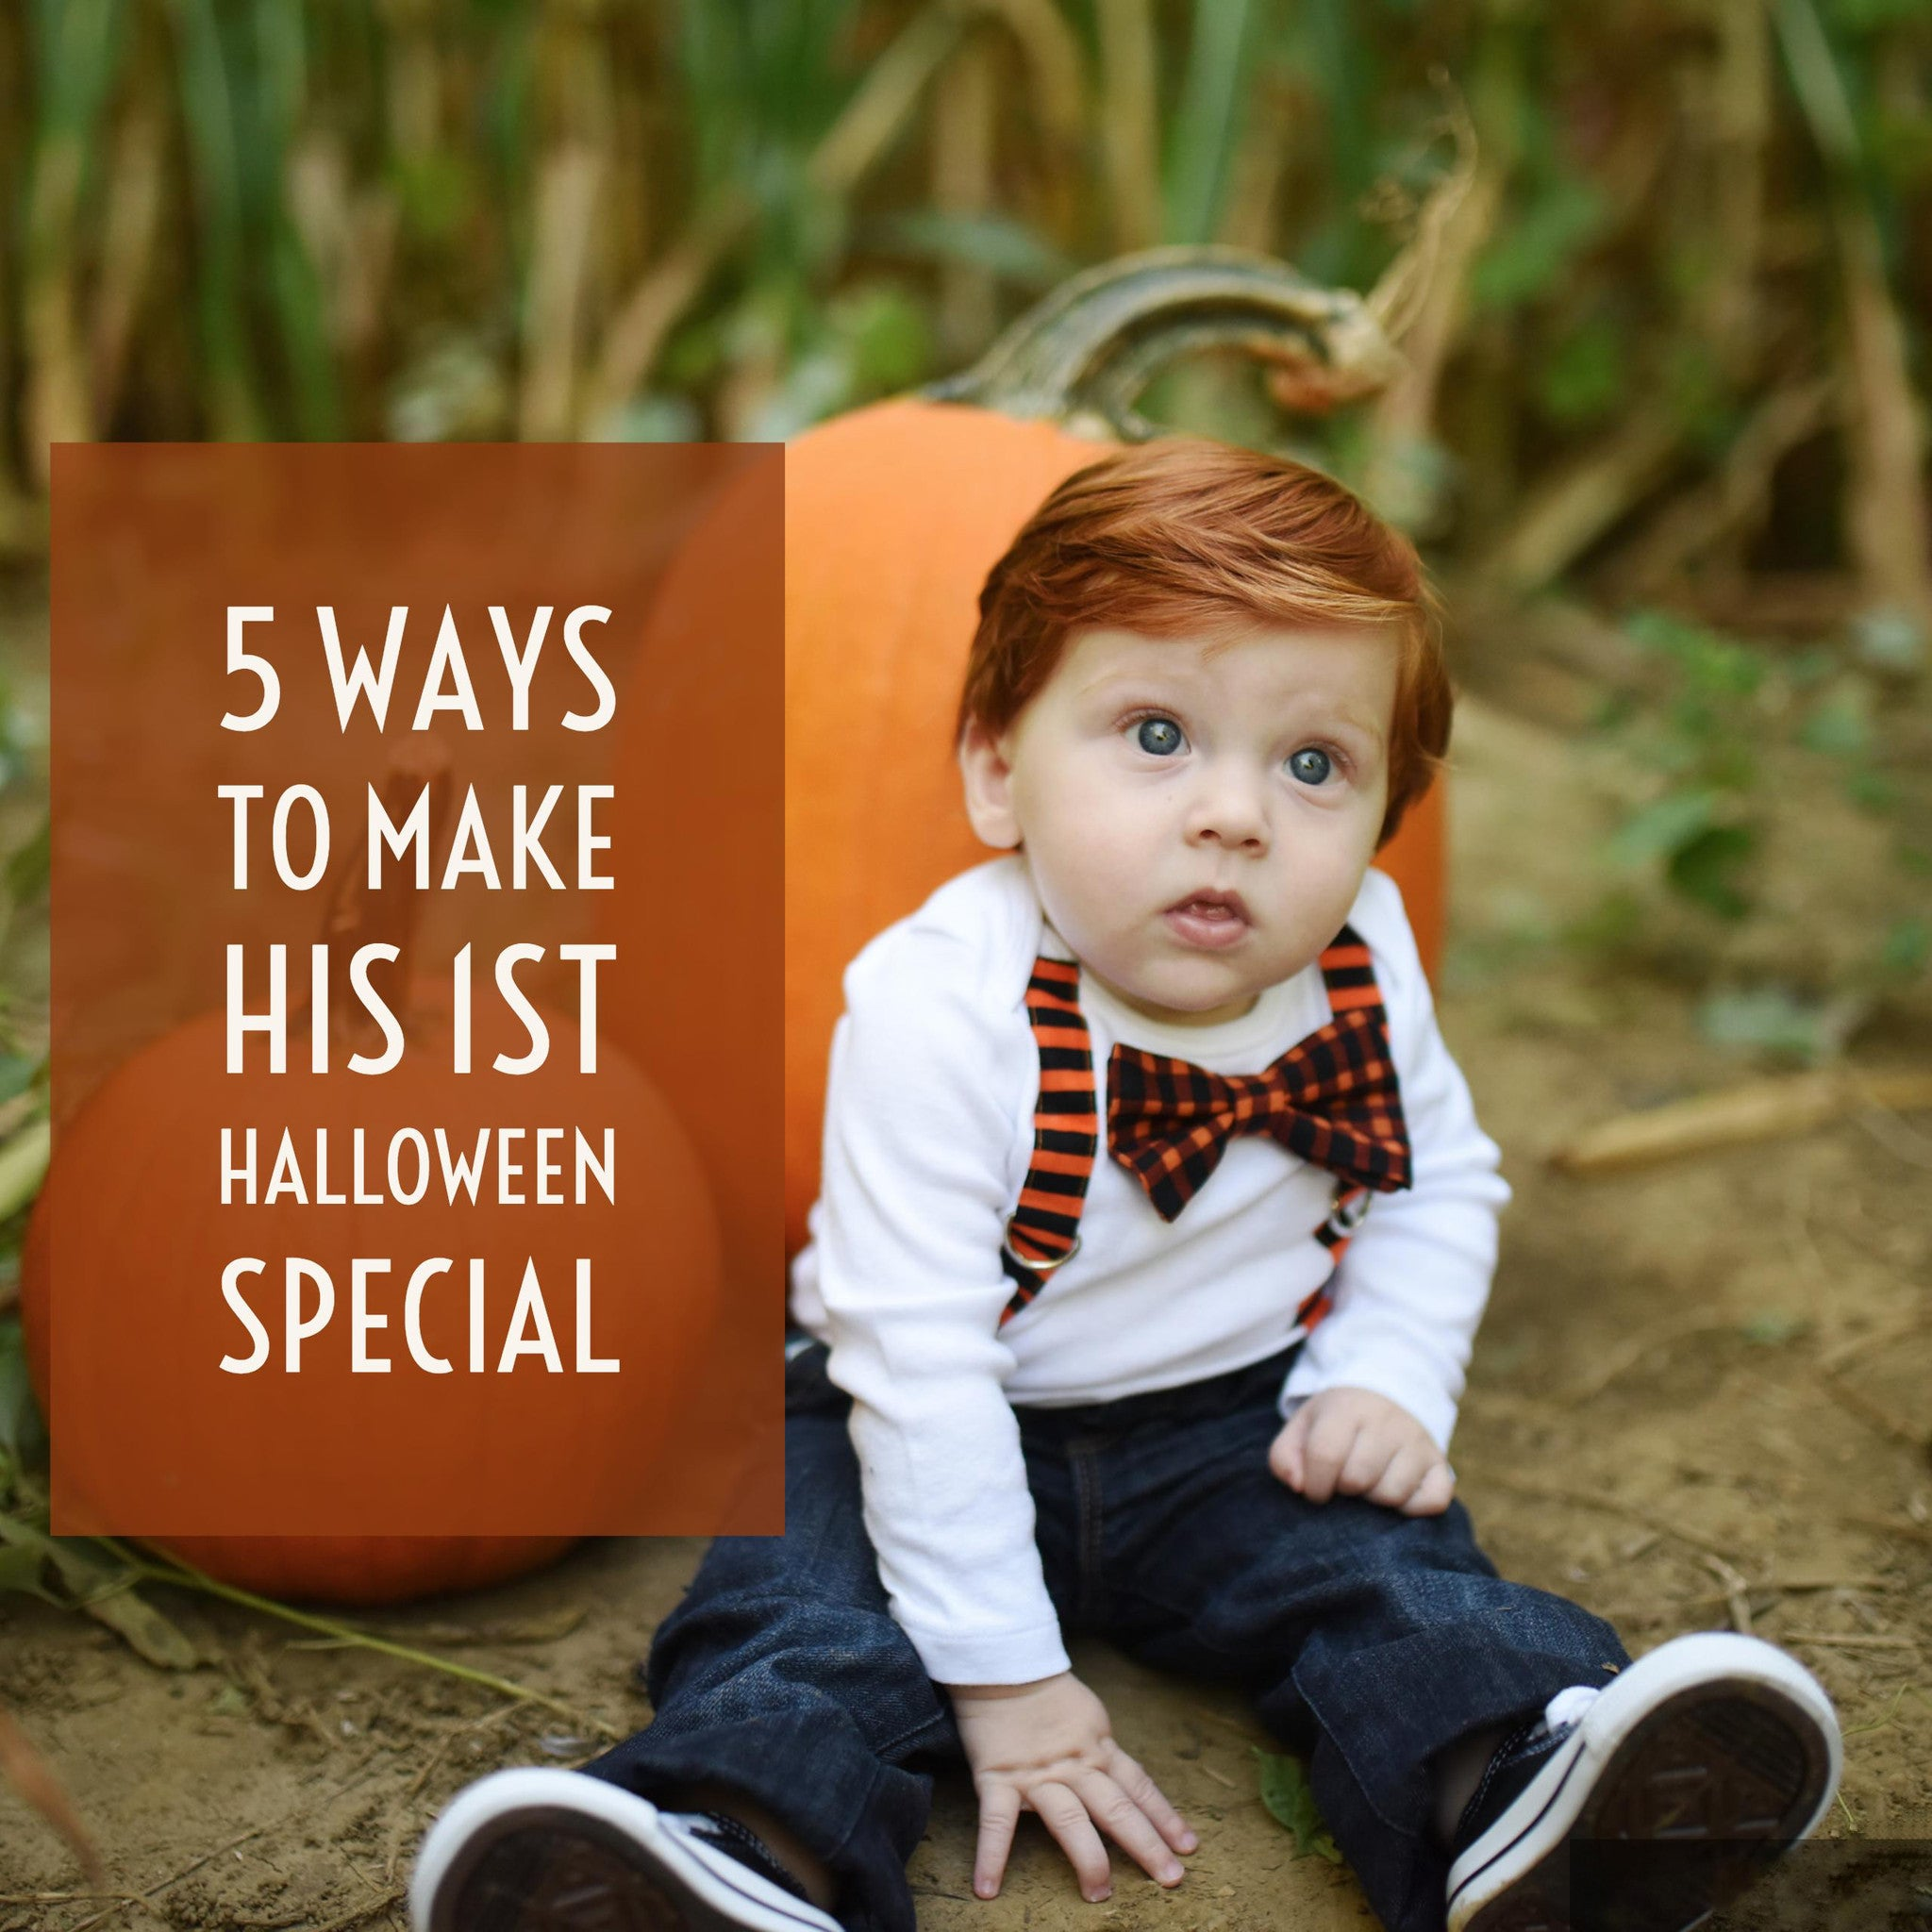 5 Ways to Make His First Halloween Special